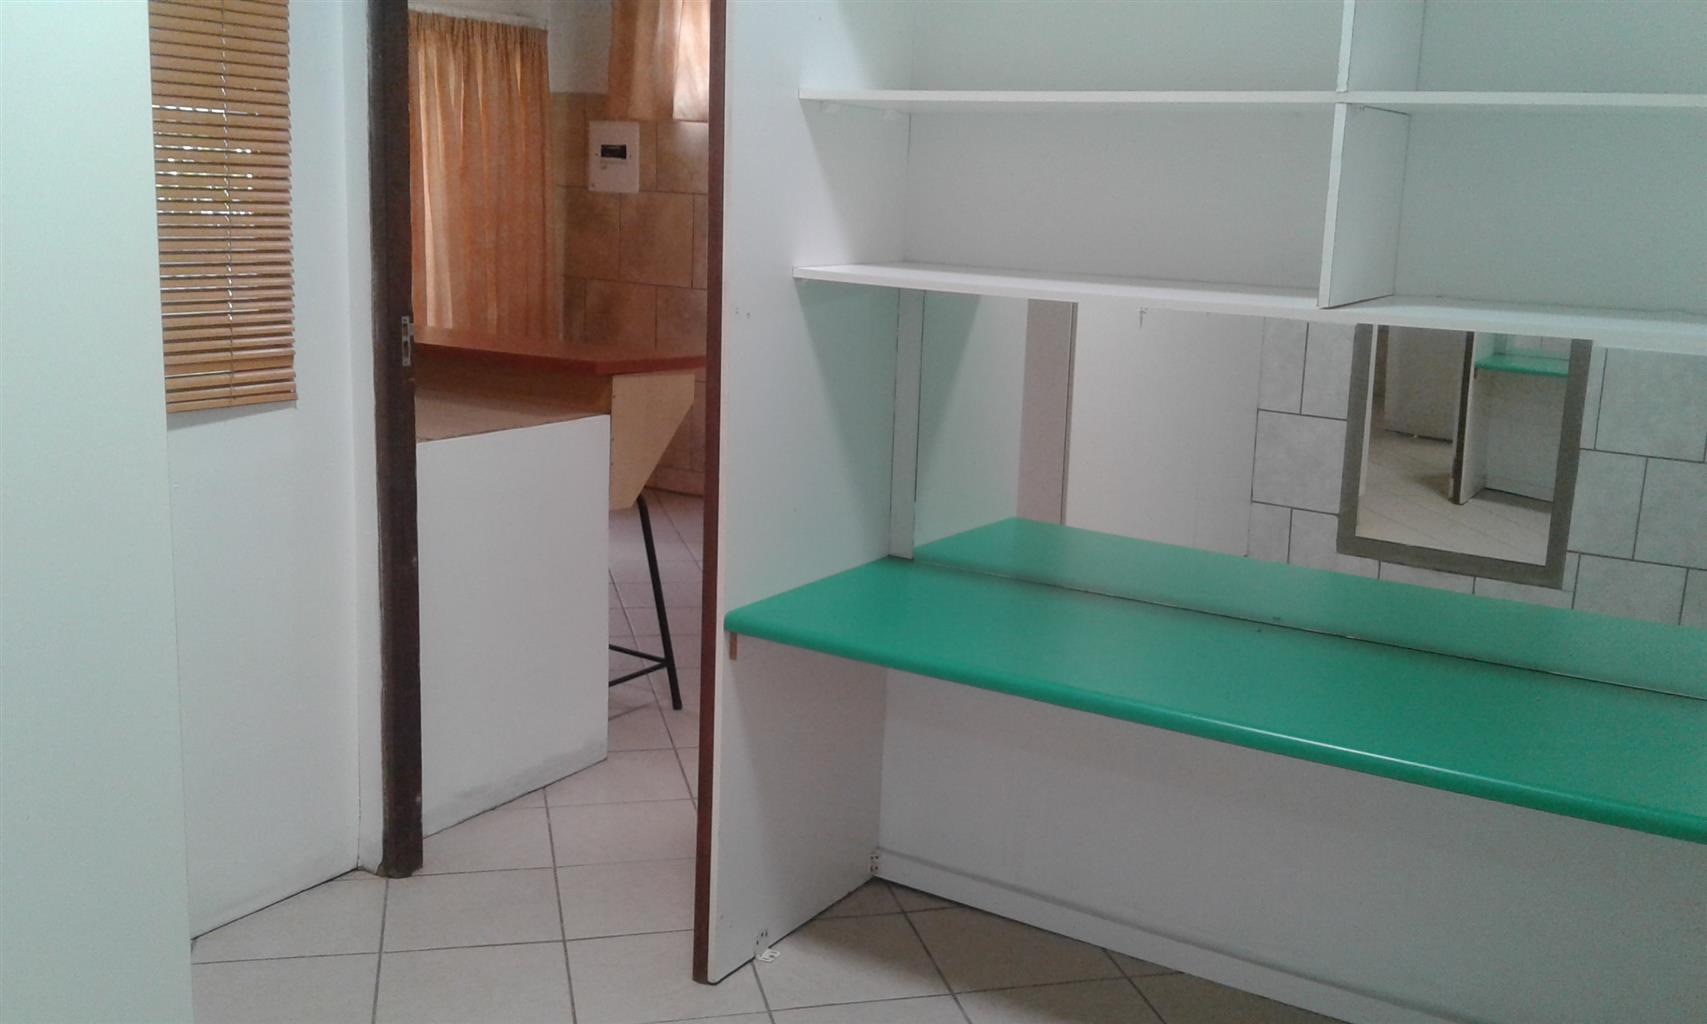 GARDEN FLAT, TWO BEDROOMS, AFFORDABLE, GOOD SECURITY, PET FRIENDLY, CLEAN, TWEE SLAAPKAMERS, TUINWWONSTEL